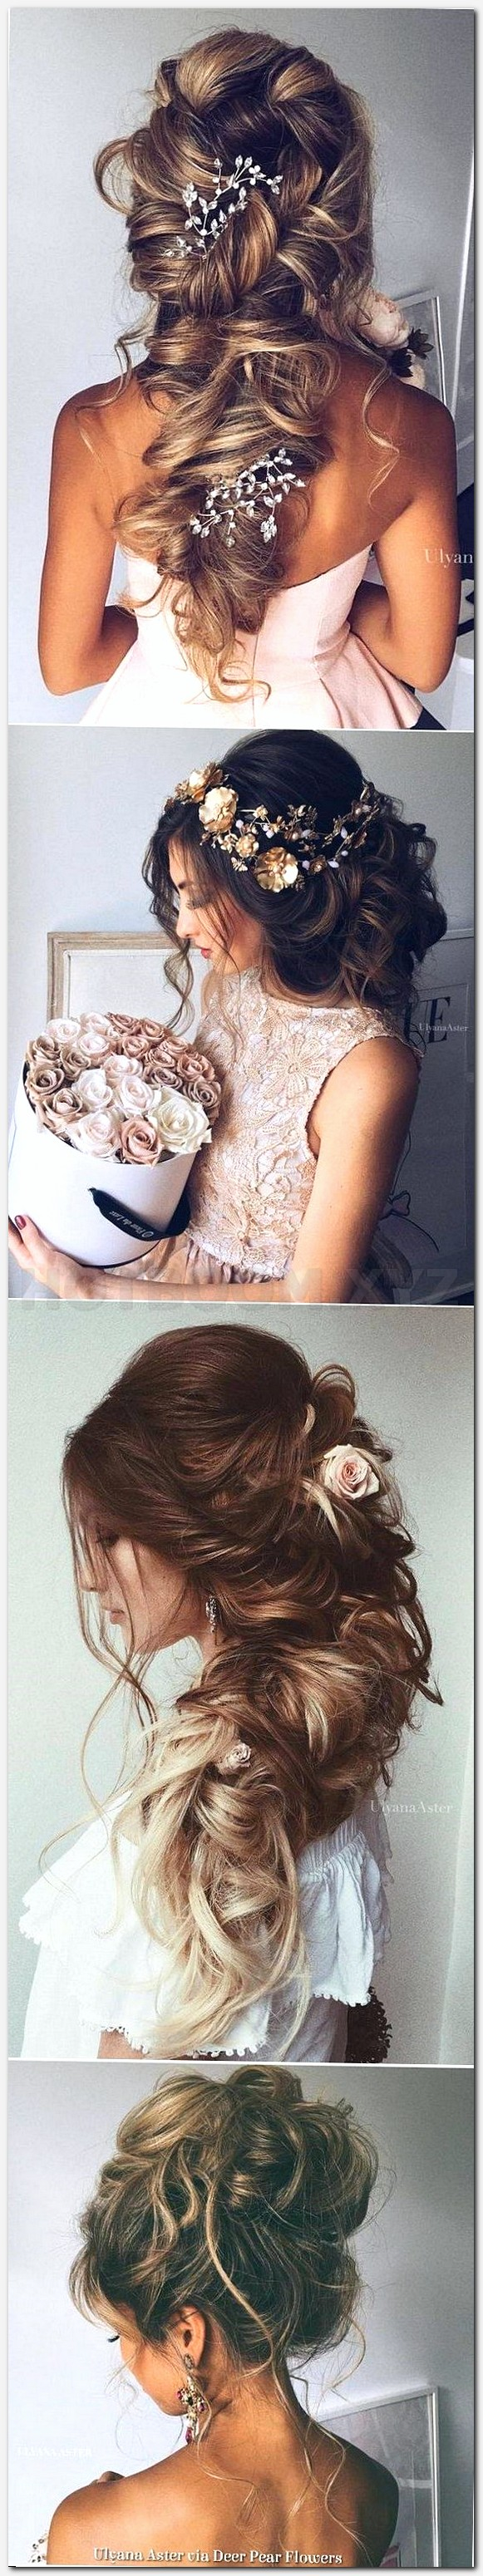 Top hairdressers simple and easy hairstyle at home popular